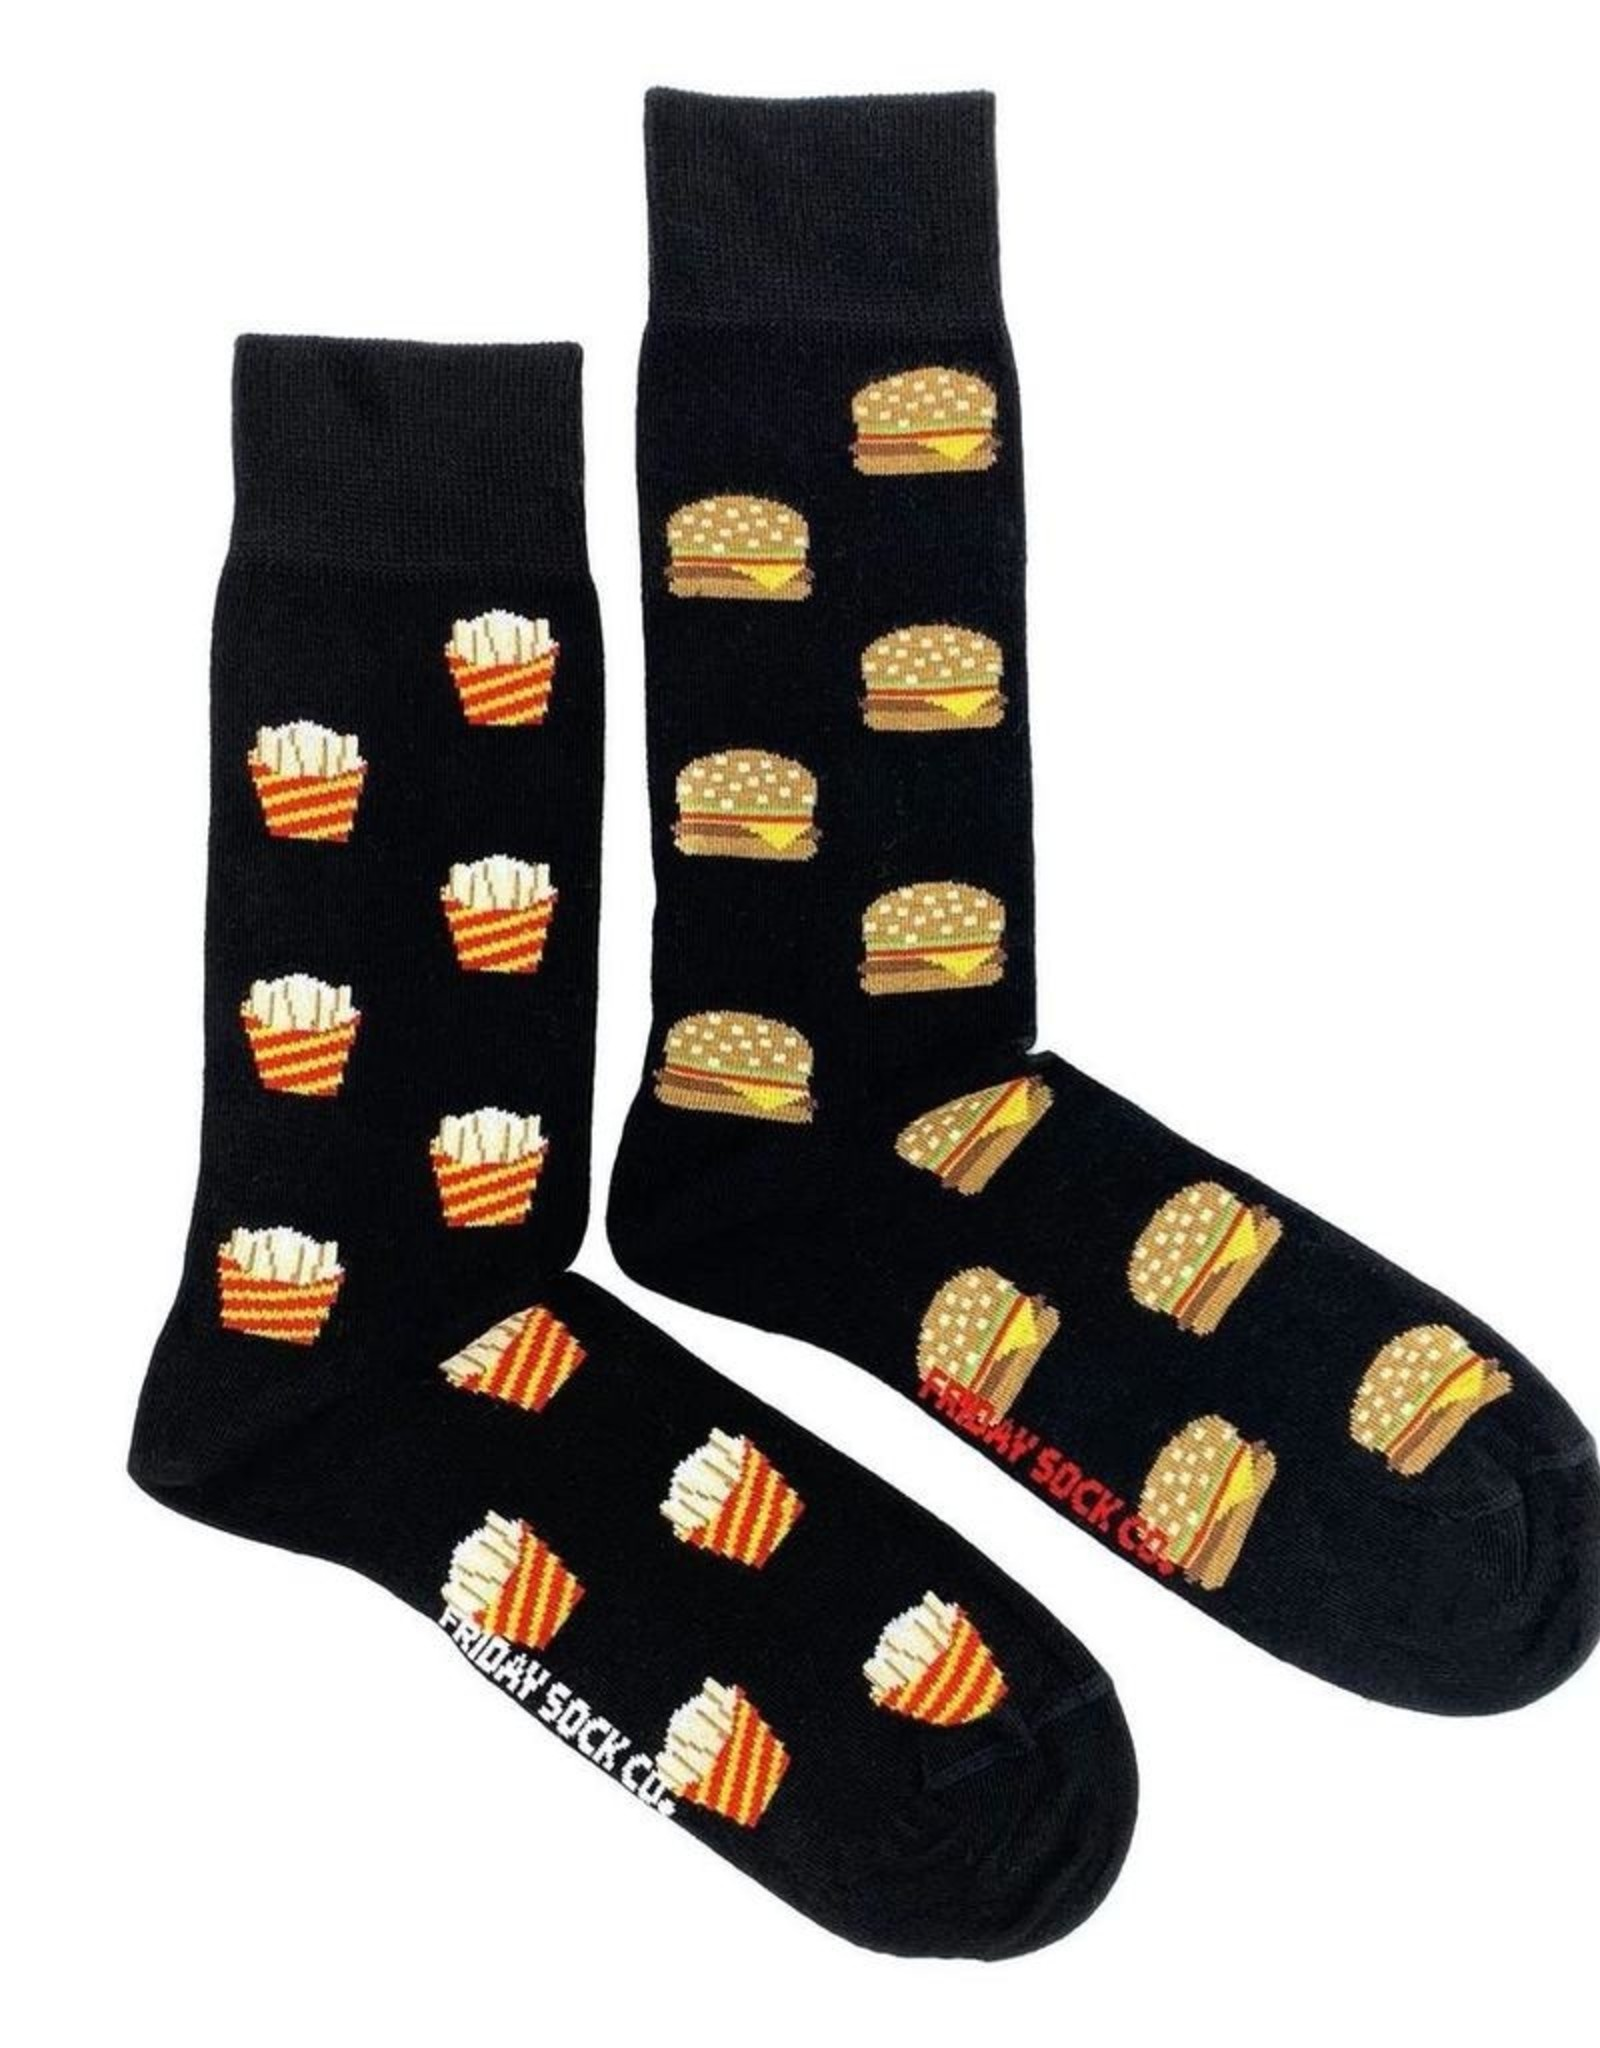 Friday Sock Co Fries And Burger Socks